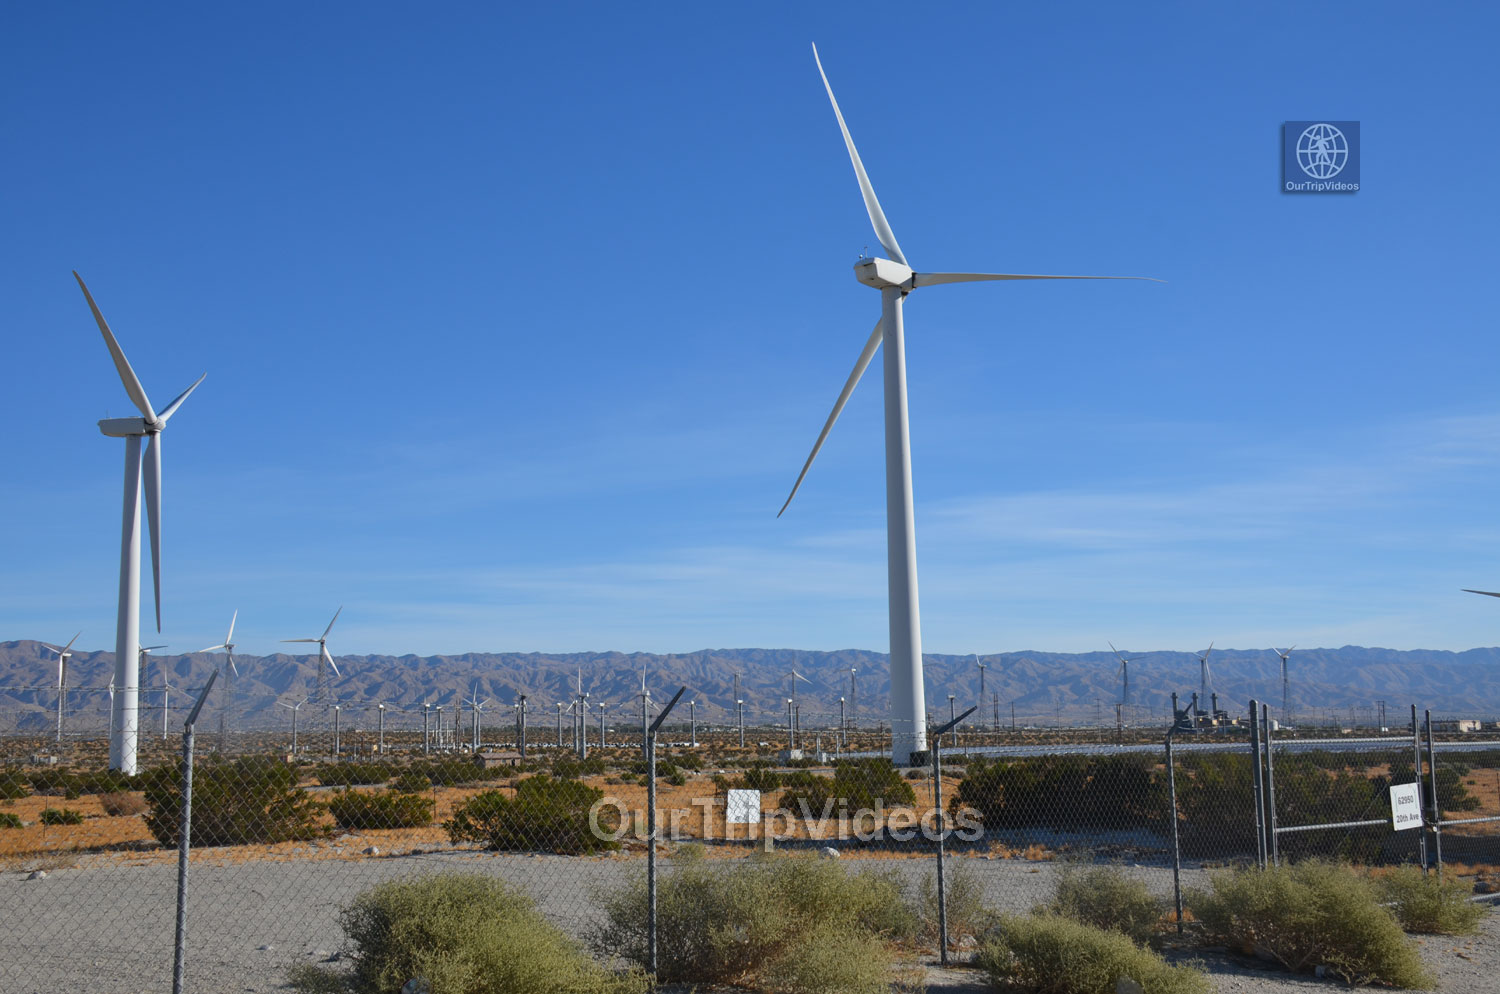 Windmill Tour, Palm Springs, CA, USA - Picture 6 of 25